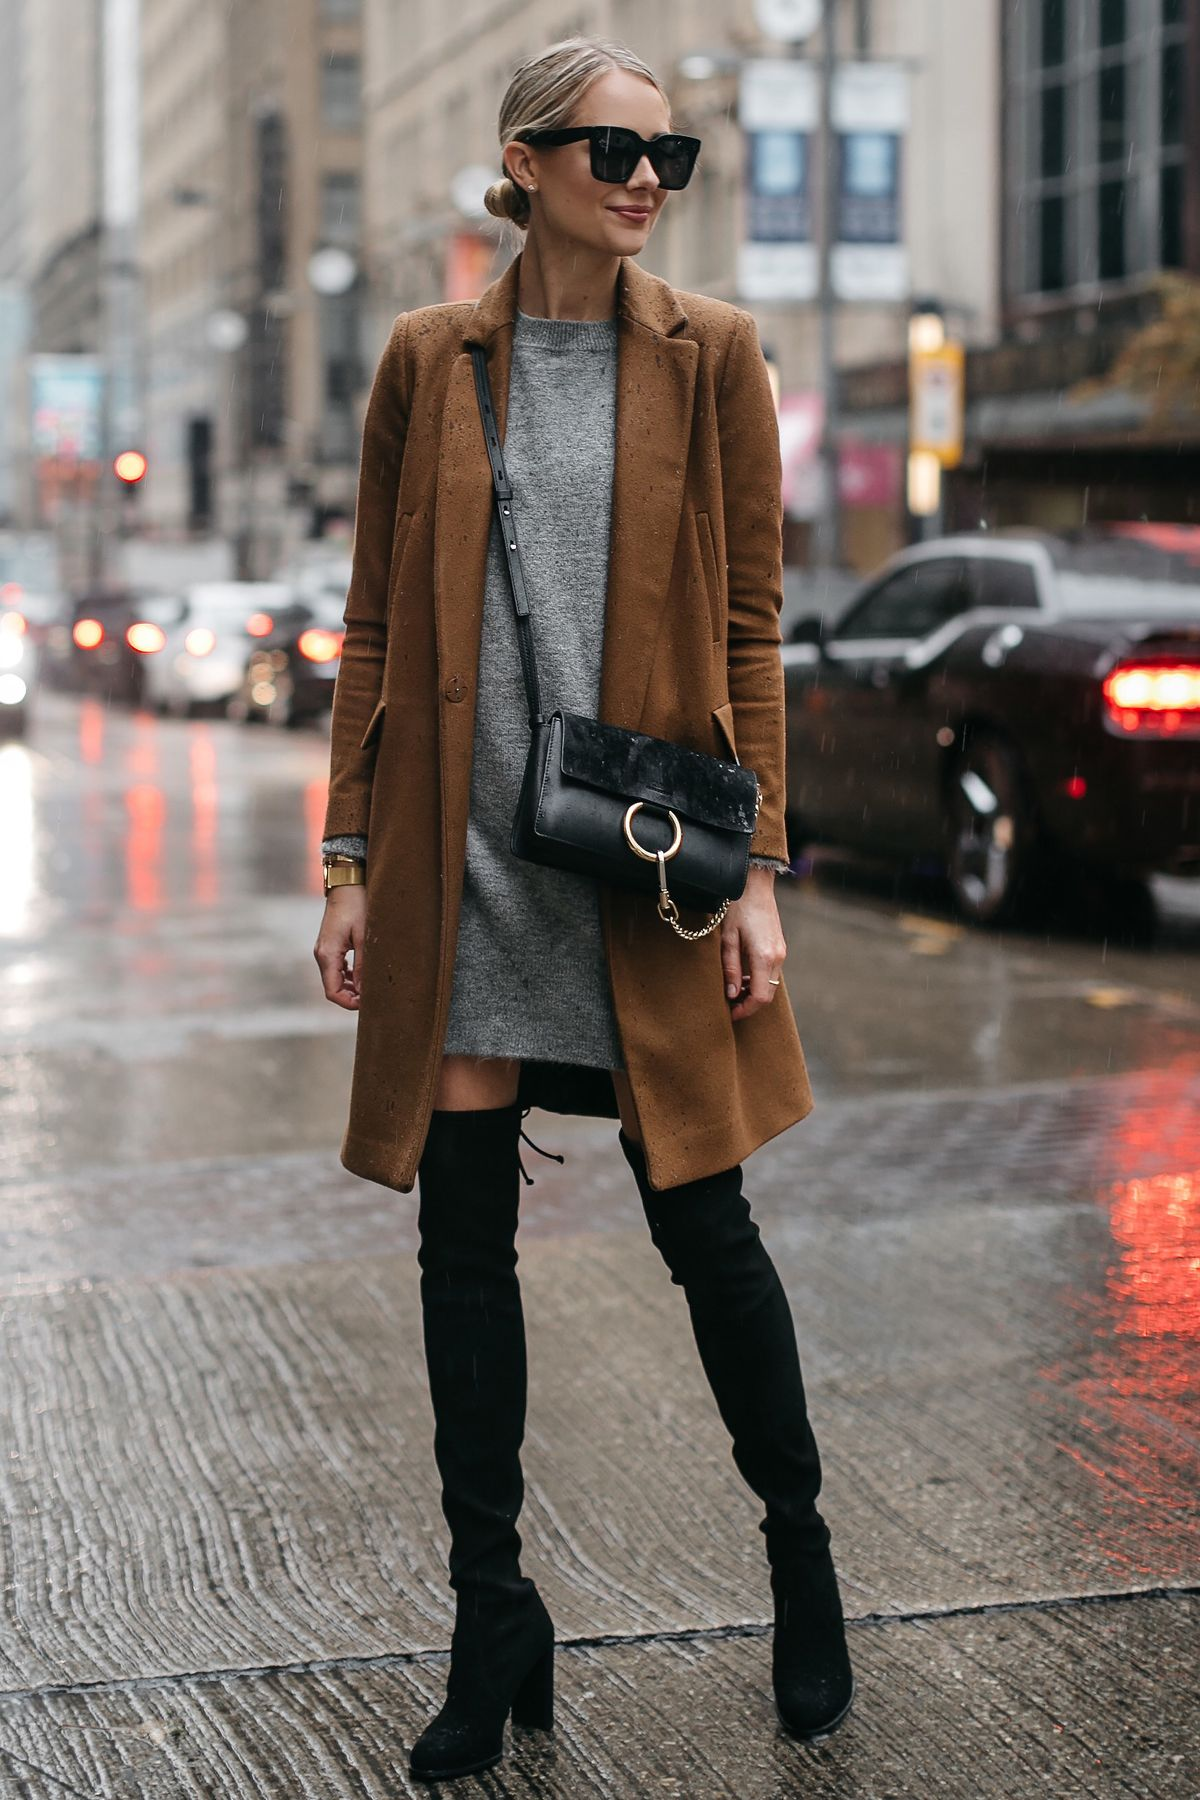 c81da85c1d8 Blonde Woman Wearing Zara Camel Wool Coat Topshop Grey Sweater Dress Chloe  Faye Handbag Stuart Weitzman Black Over the Knee Boots Fashion Jackson  Dallas ...